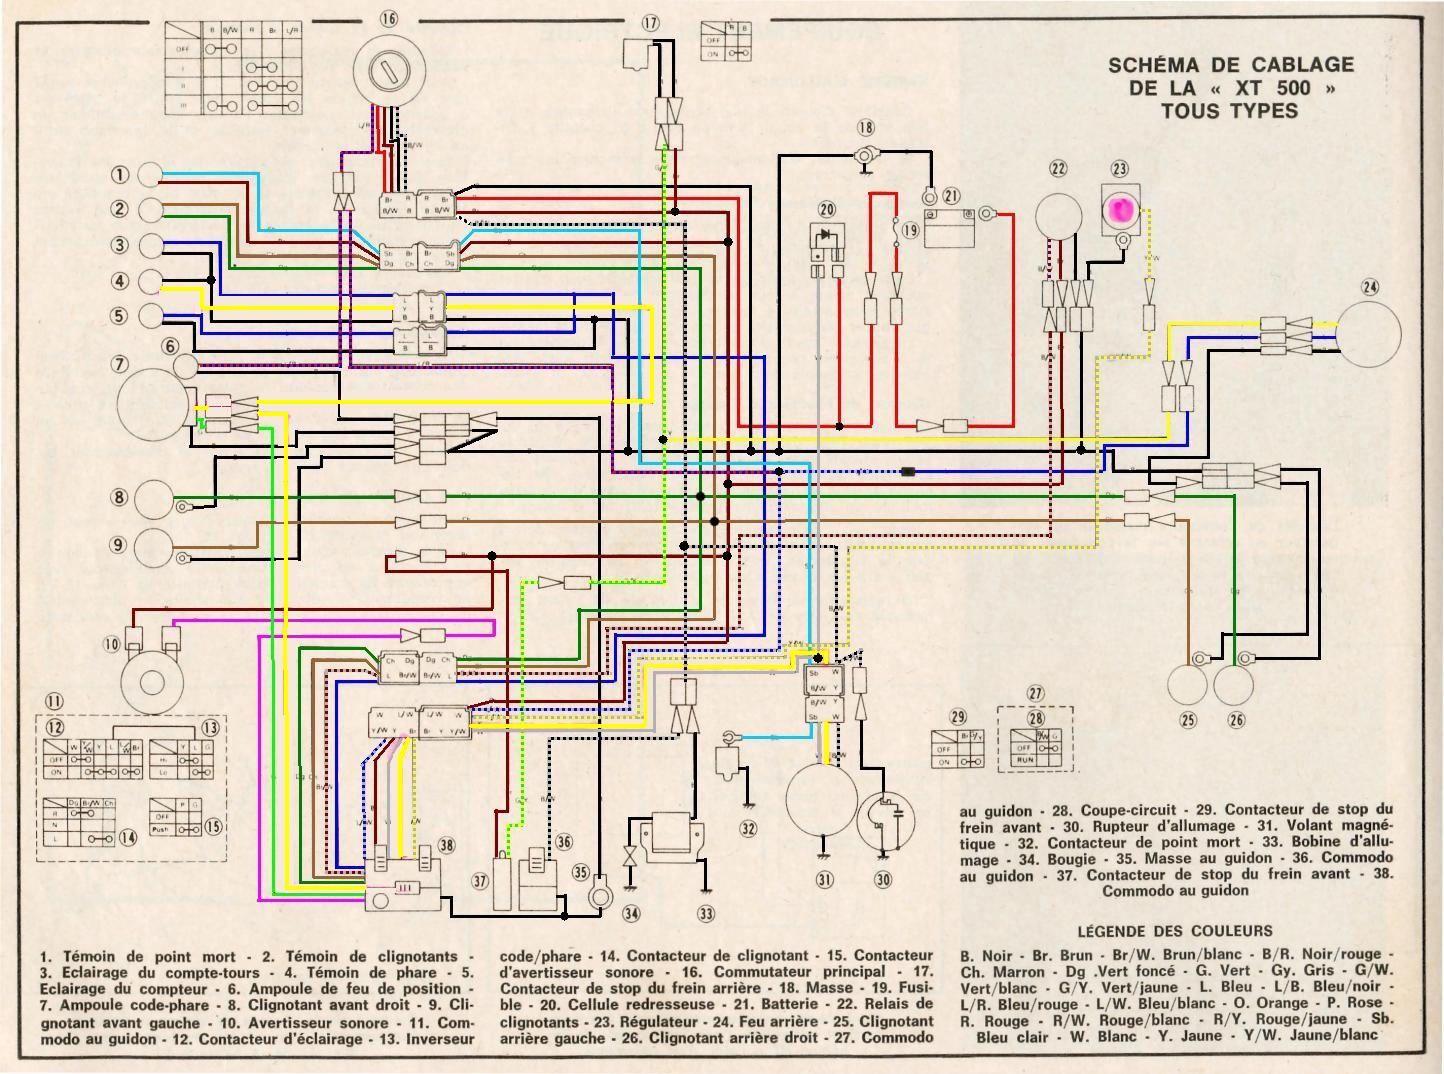 yamaha xt 250 wiring diagram stress strain for ductile material 1976 xt500 diagrams repair scheme